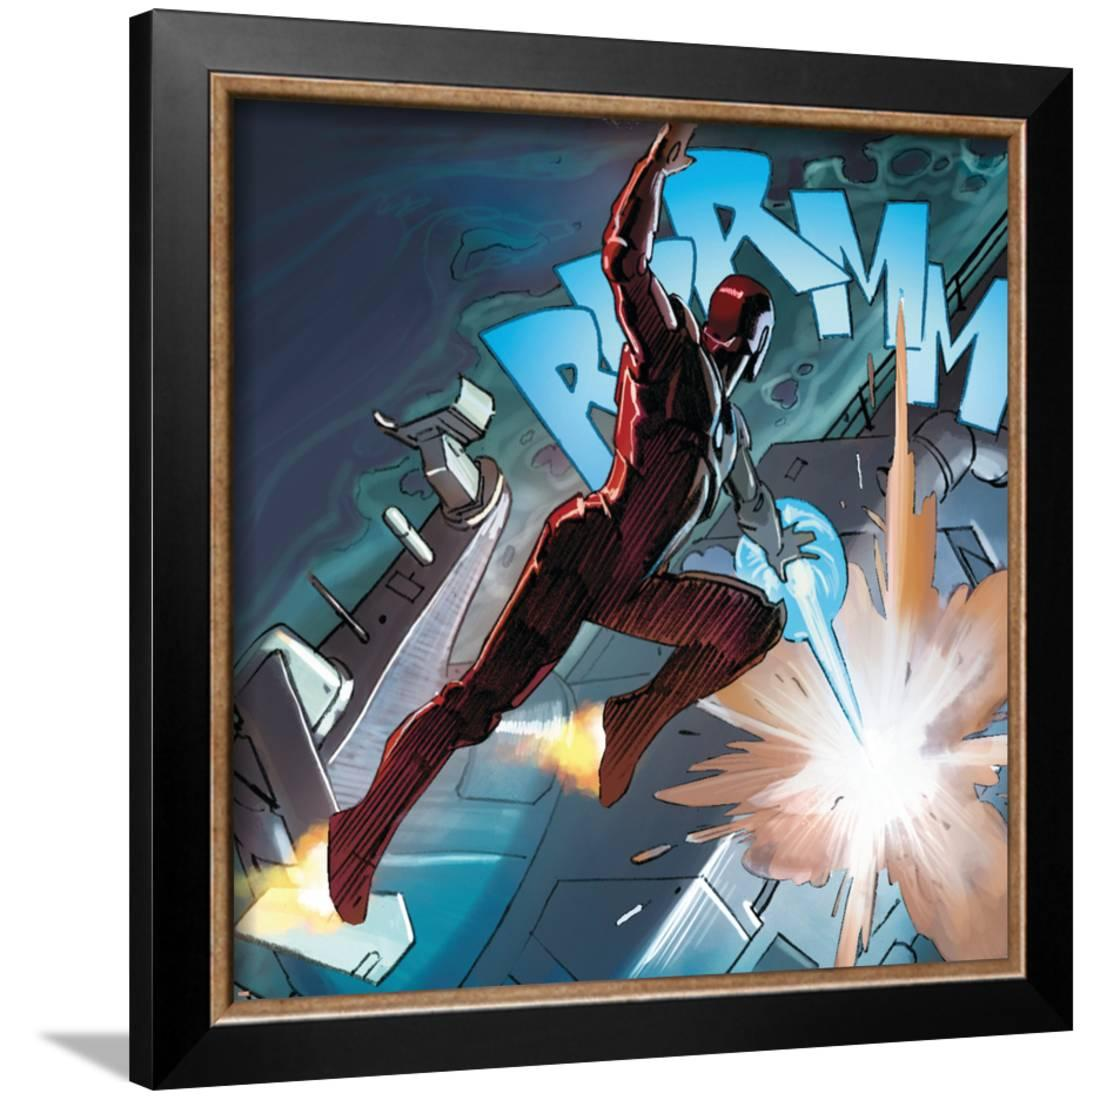 Avengers Assemble Style Guide: Iron Man Framed Poster Wall Art